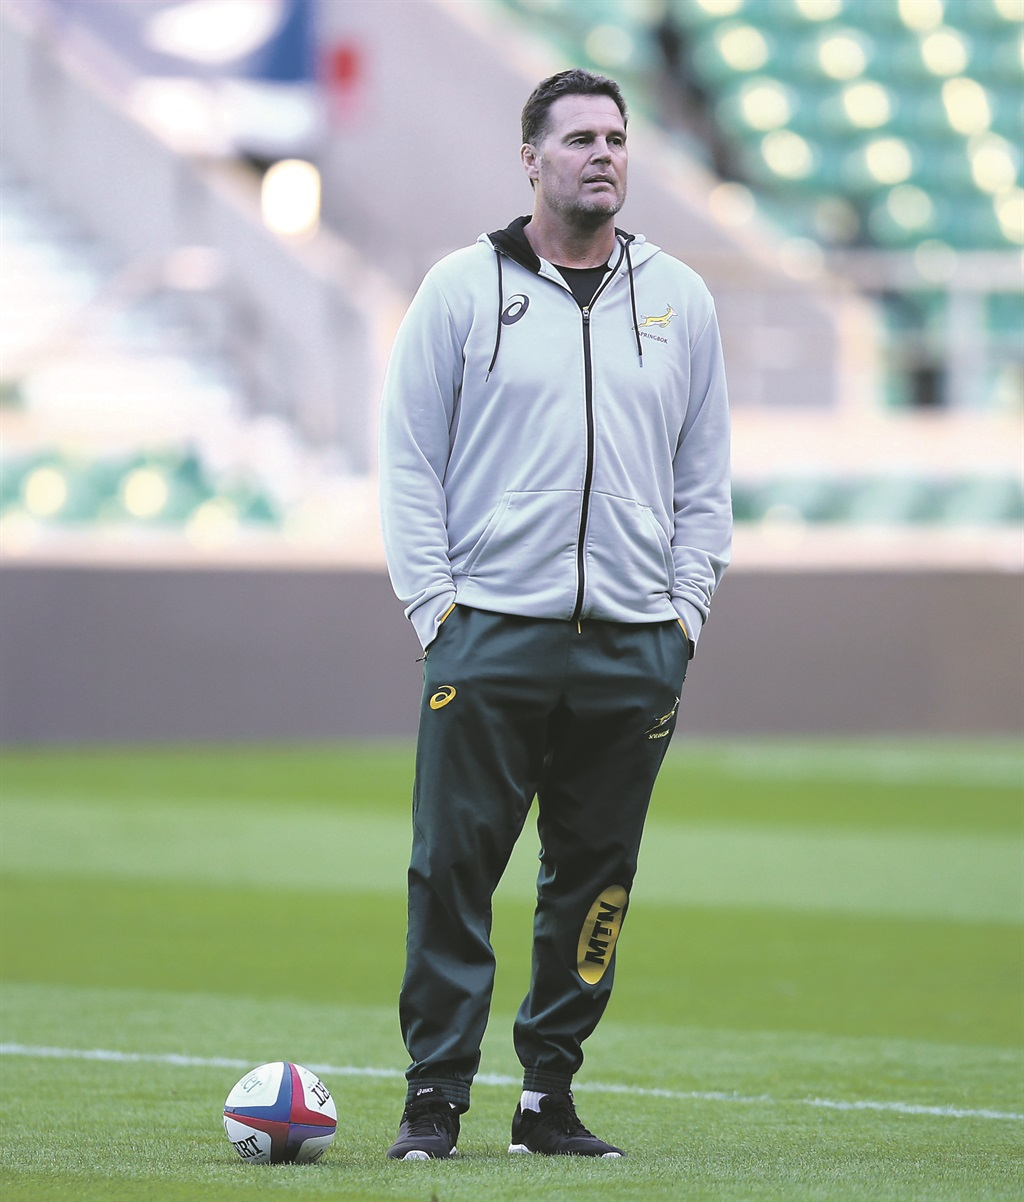 Side Entry: Why Rassie could be tempted to move to England